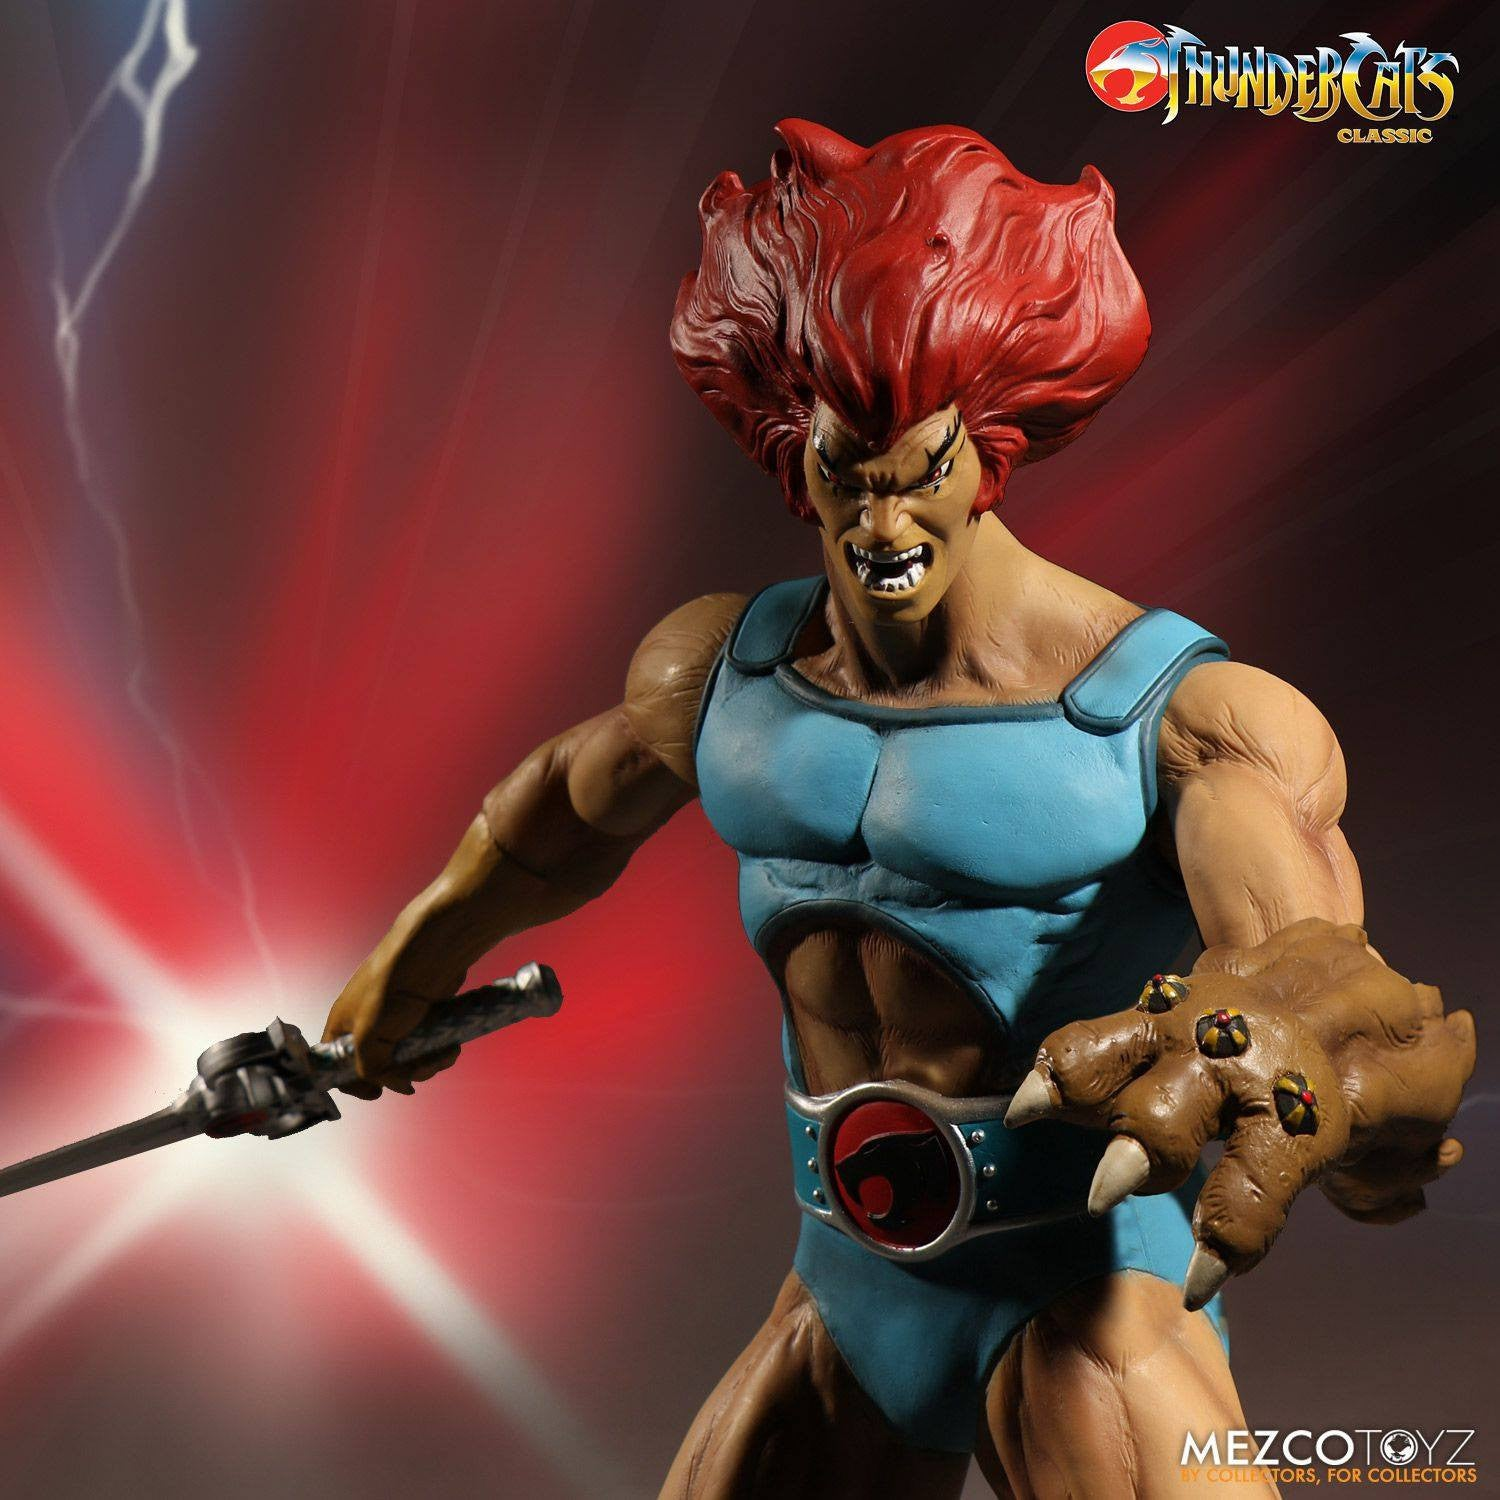 Mezco - Mega Scale - Thundercats - Lion-O Deluxe Edition - Marvelous Toys - 2